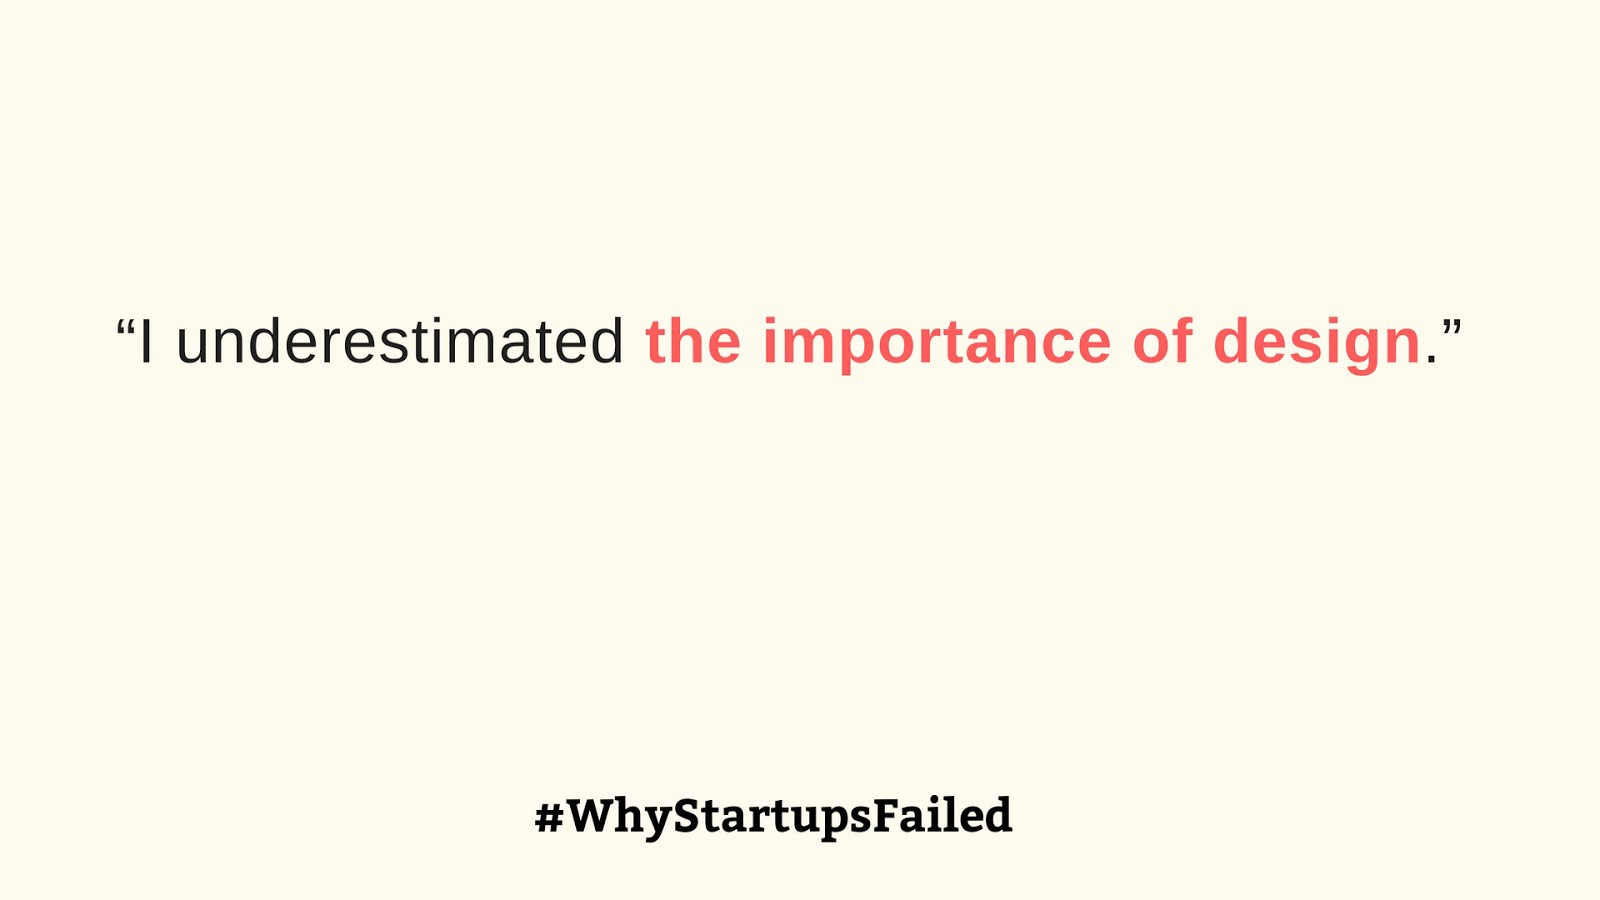 Why do startups fail? A postmortem of 256 failed startups  - By